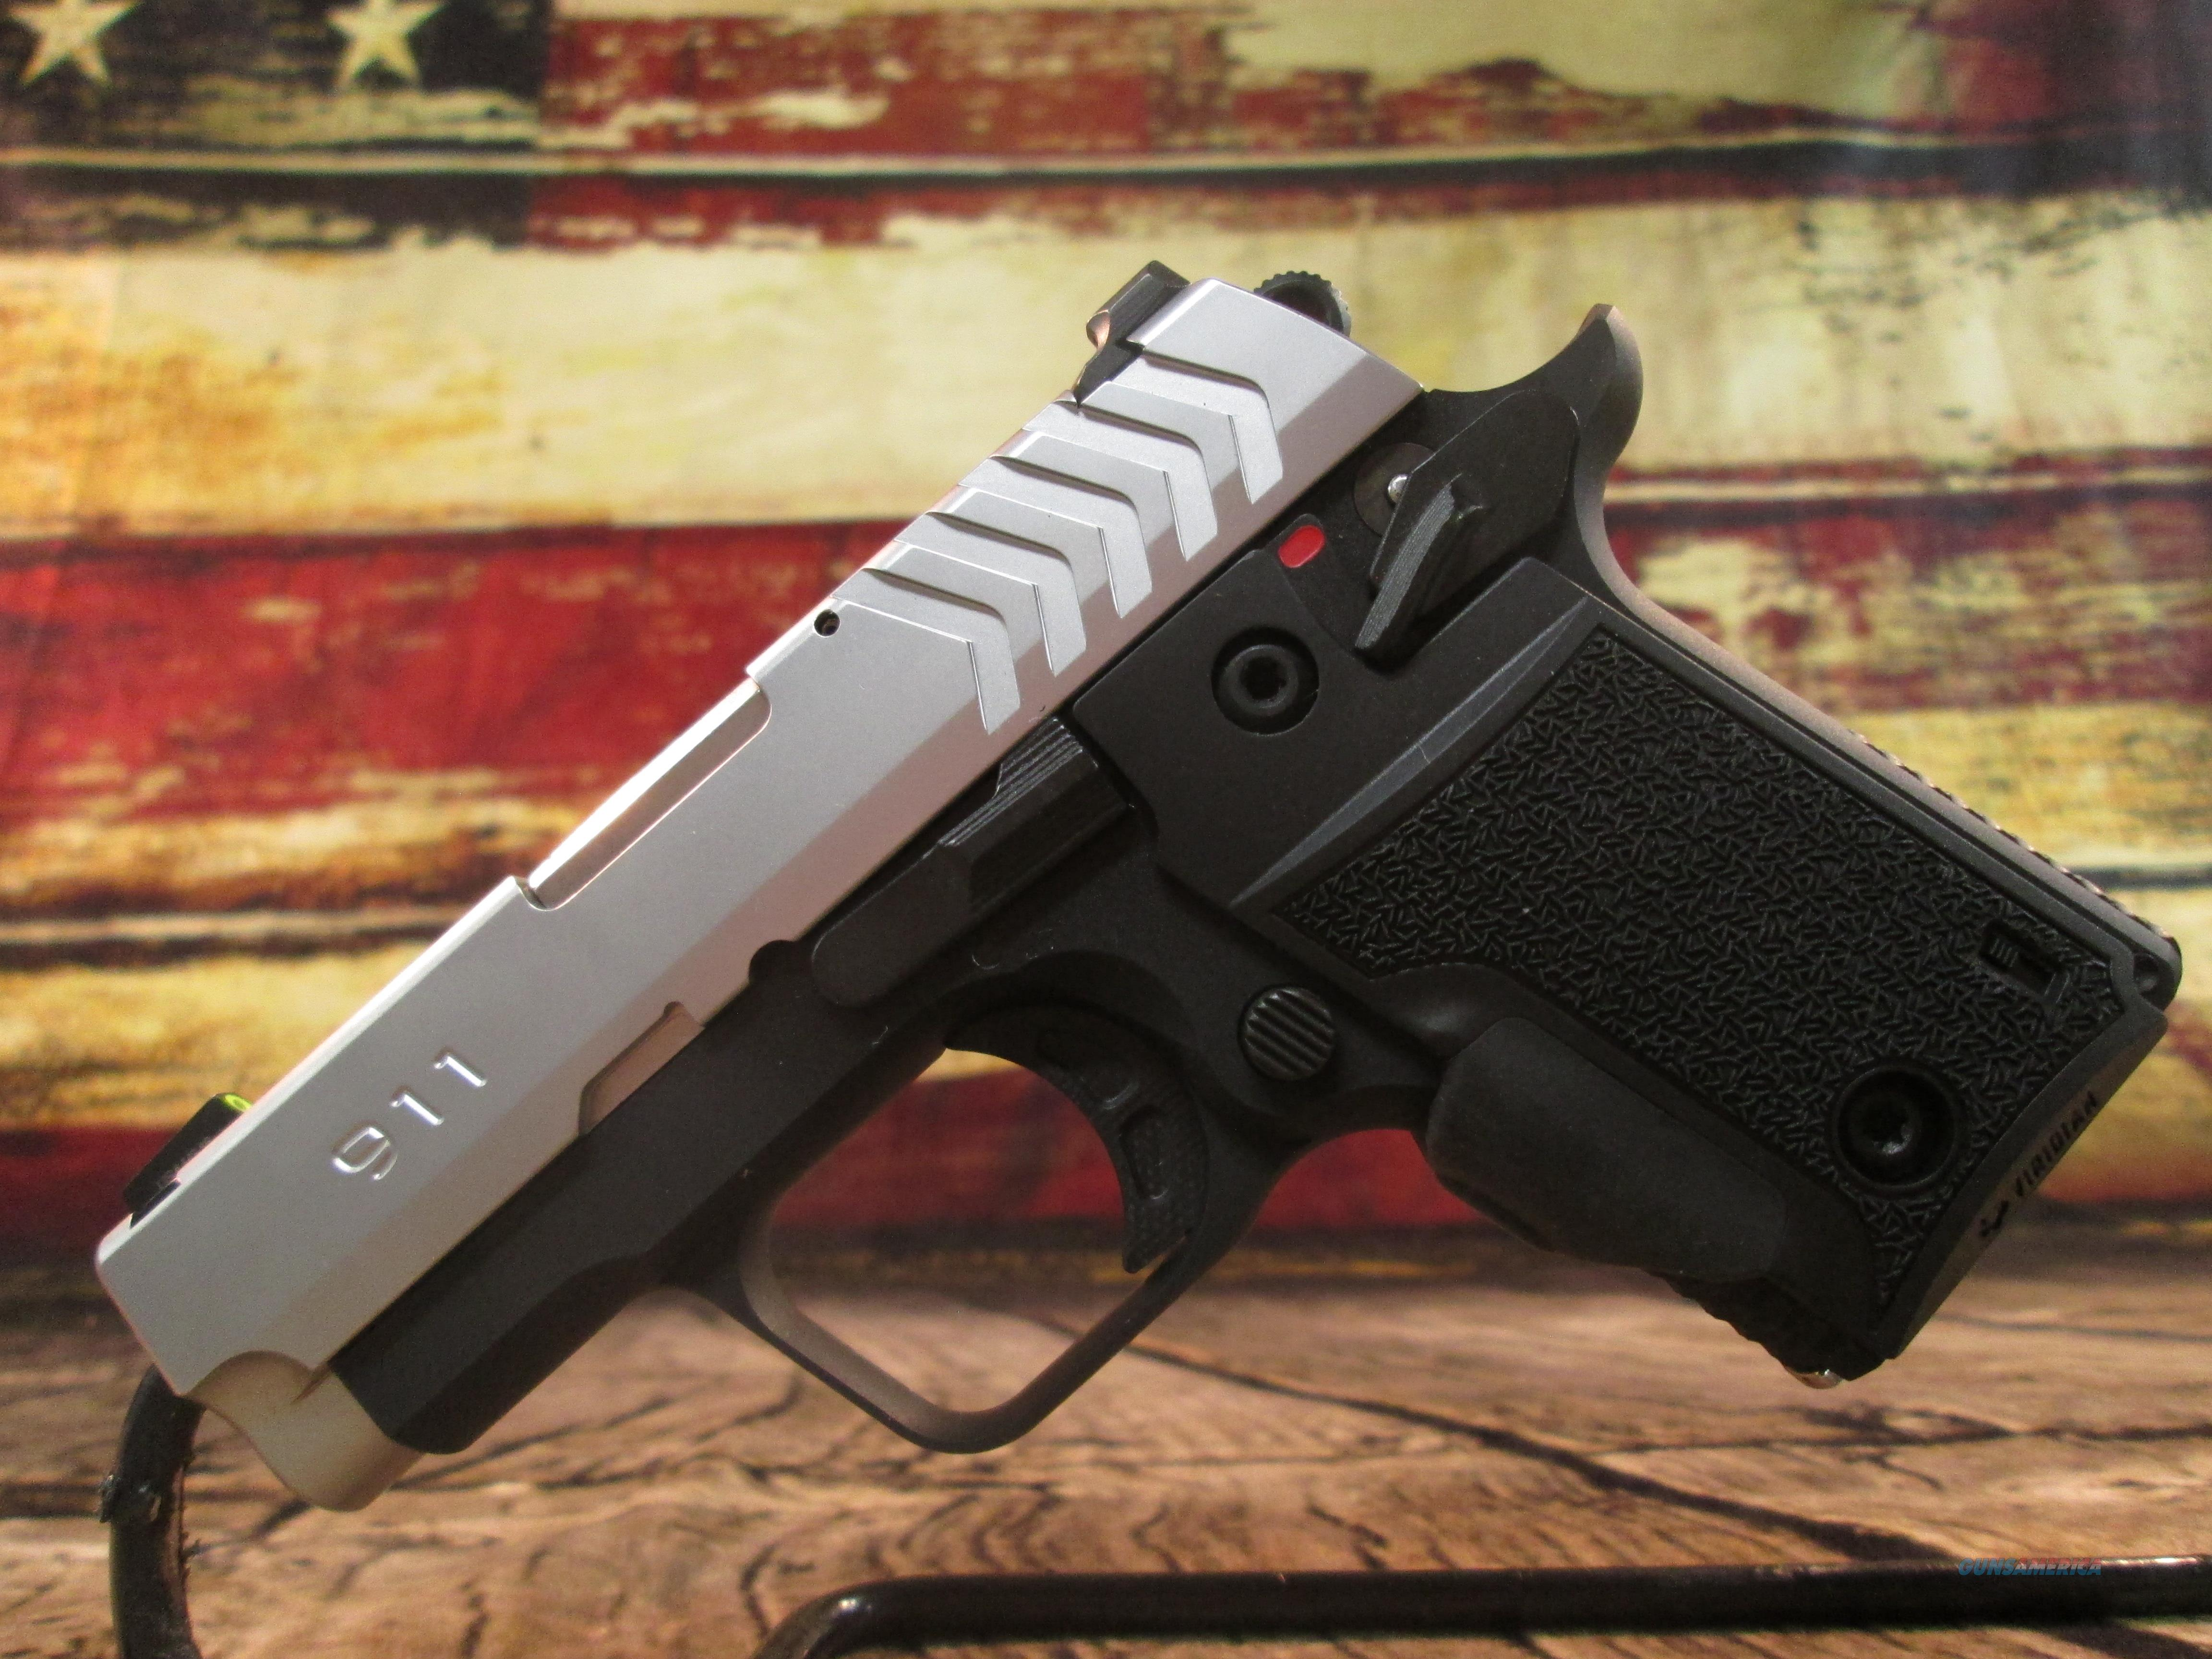 Springfield Armory 911 W/ Viridian Green Laser Grip .380 ACP New (PG9109SVG)  Guns > Pistols > Springfield Armory Pistols > 911